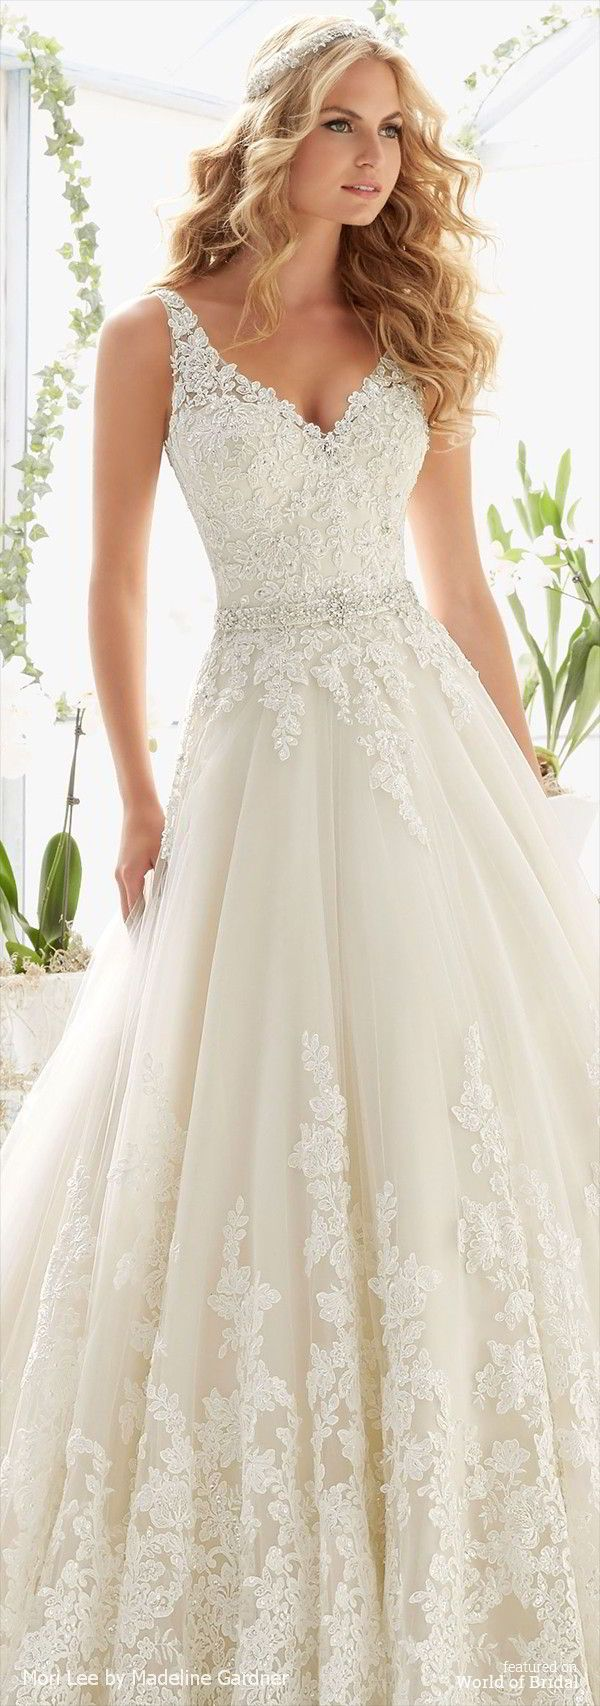 Wedding Table Pinterest Wedding Dress 17 best ideas about wedding dresses on pinterest weeding mori lee by madeline gardner spring 2016 dresses